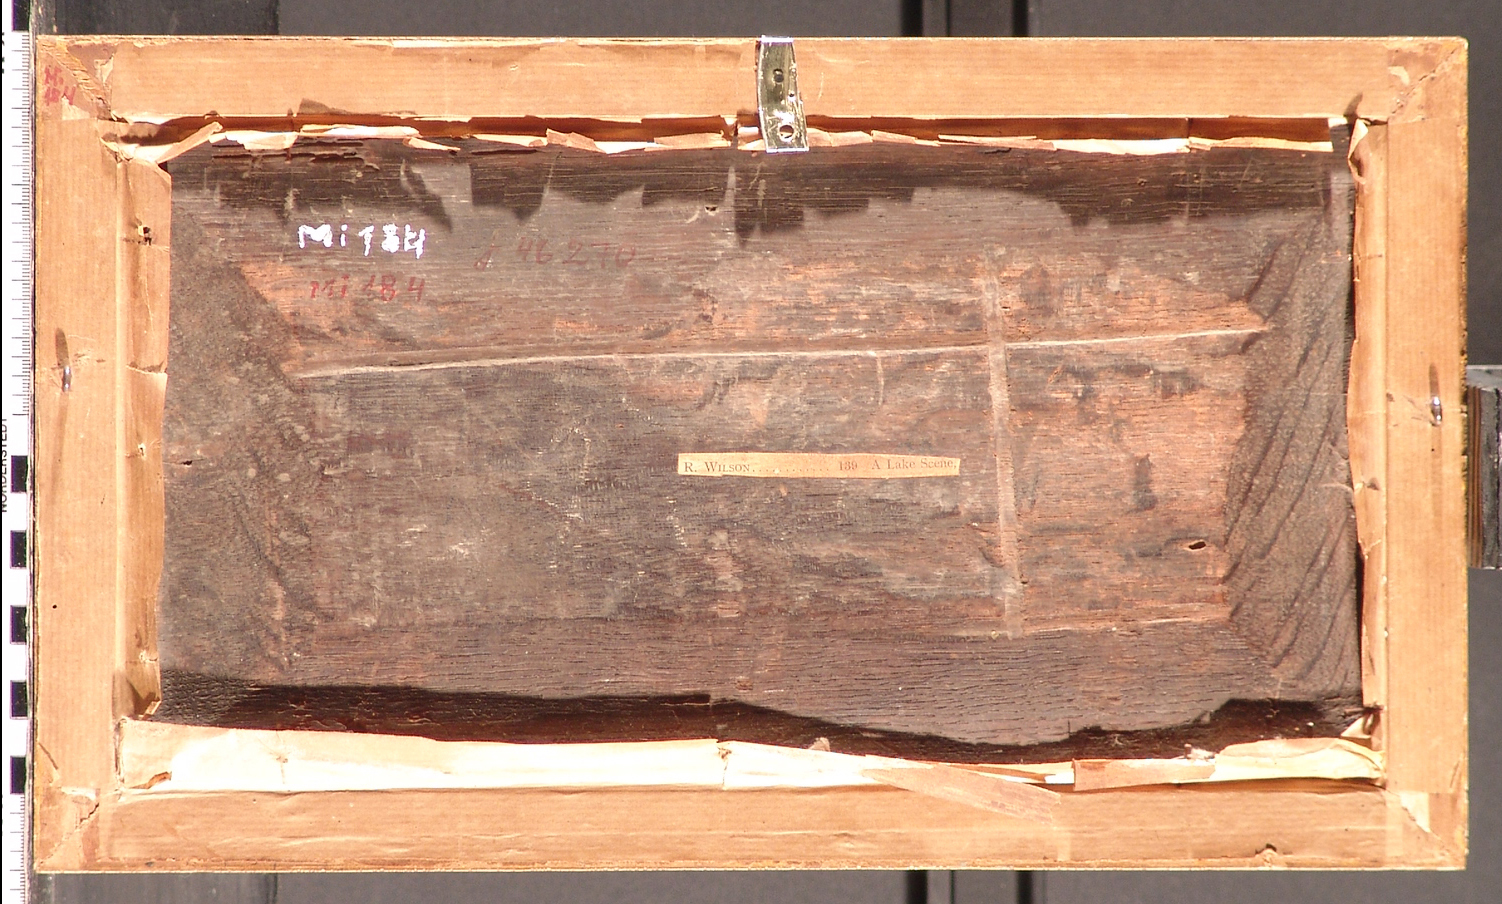 ill 22. Reverse side of a painting before forming (painting 17th.c. Mi184).